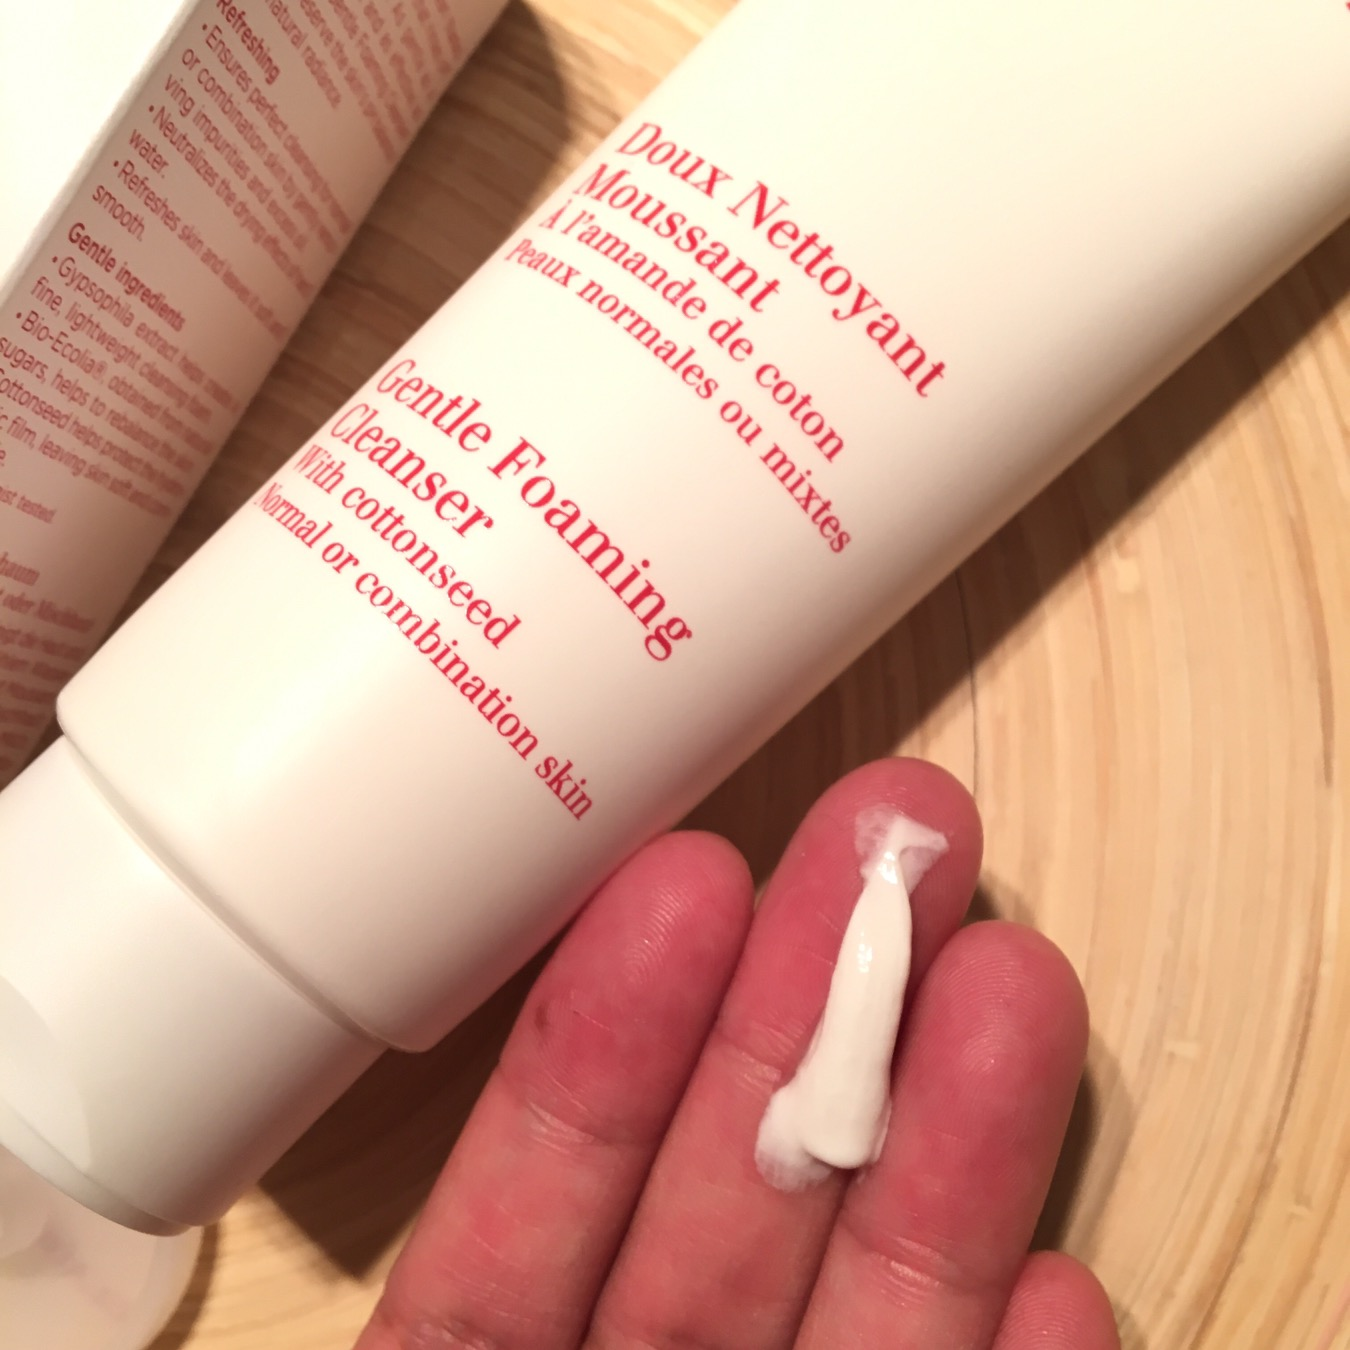 Gentle Foaming Cleanser-Combination or Oily Skin by Clarins #14